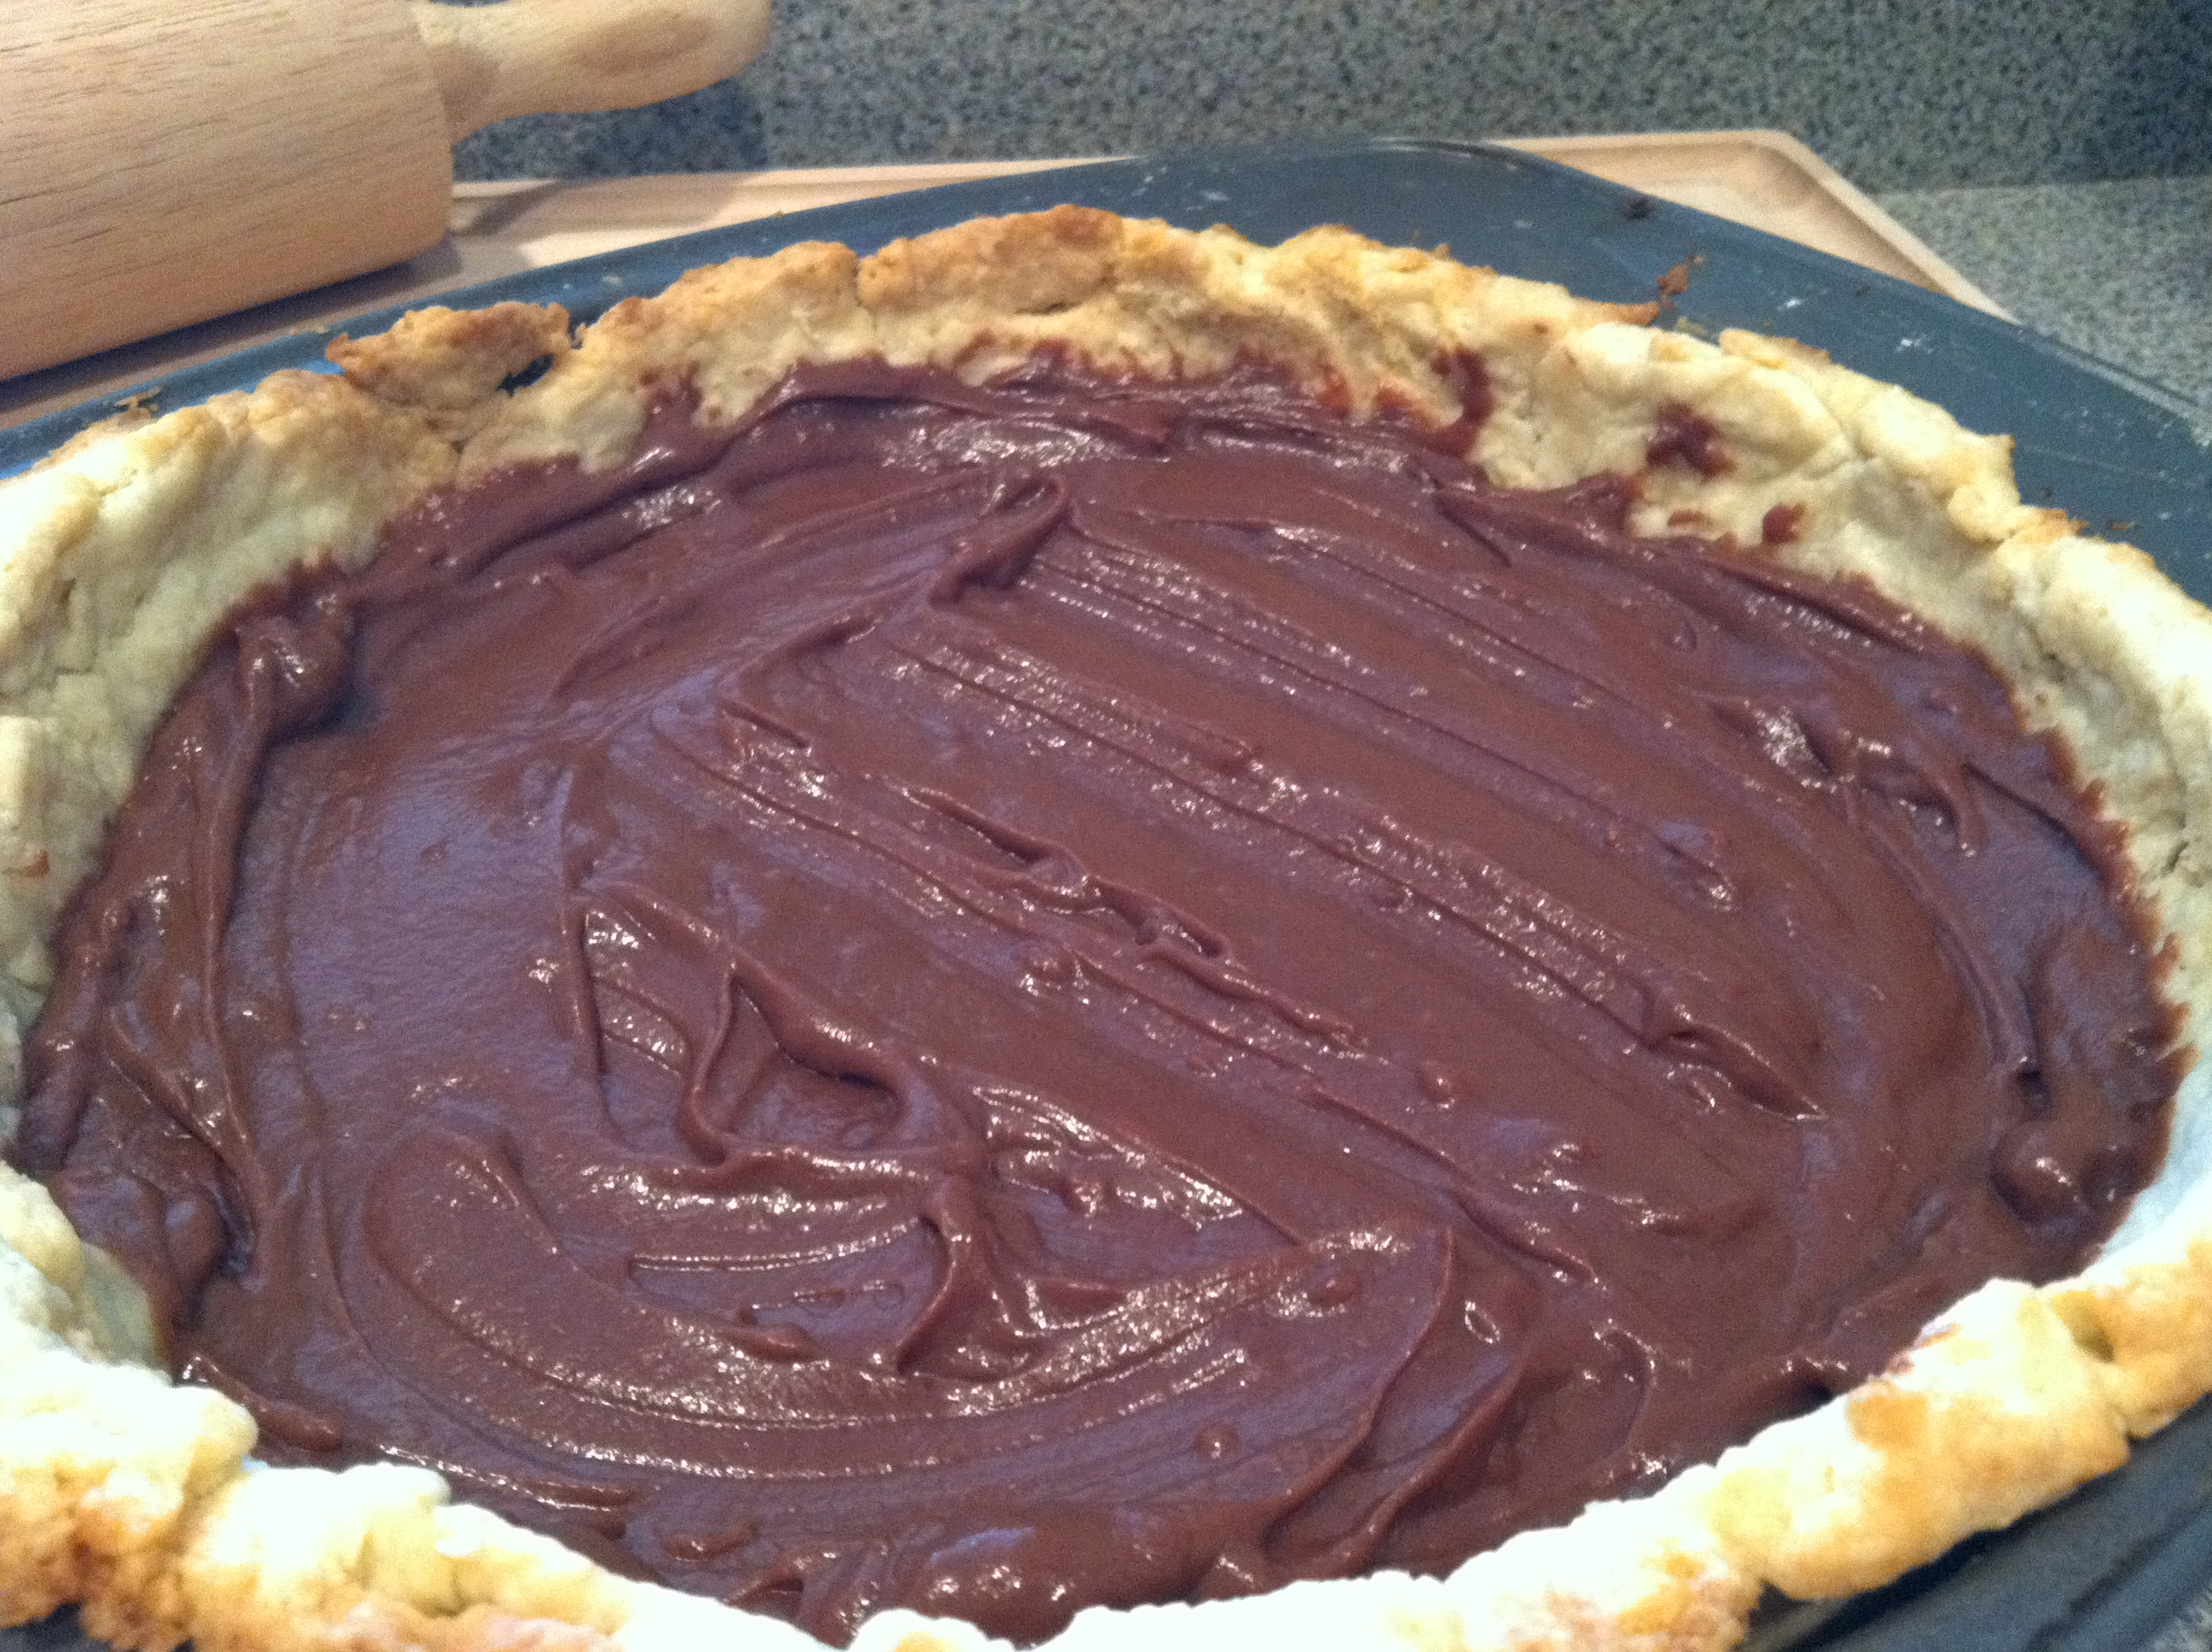 Chocolate Pie Images - Reverse Search